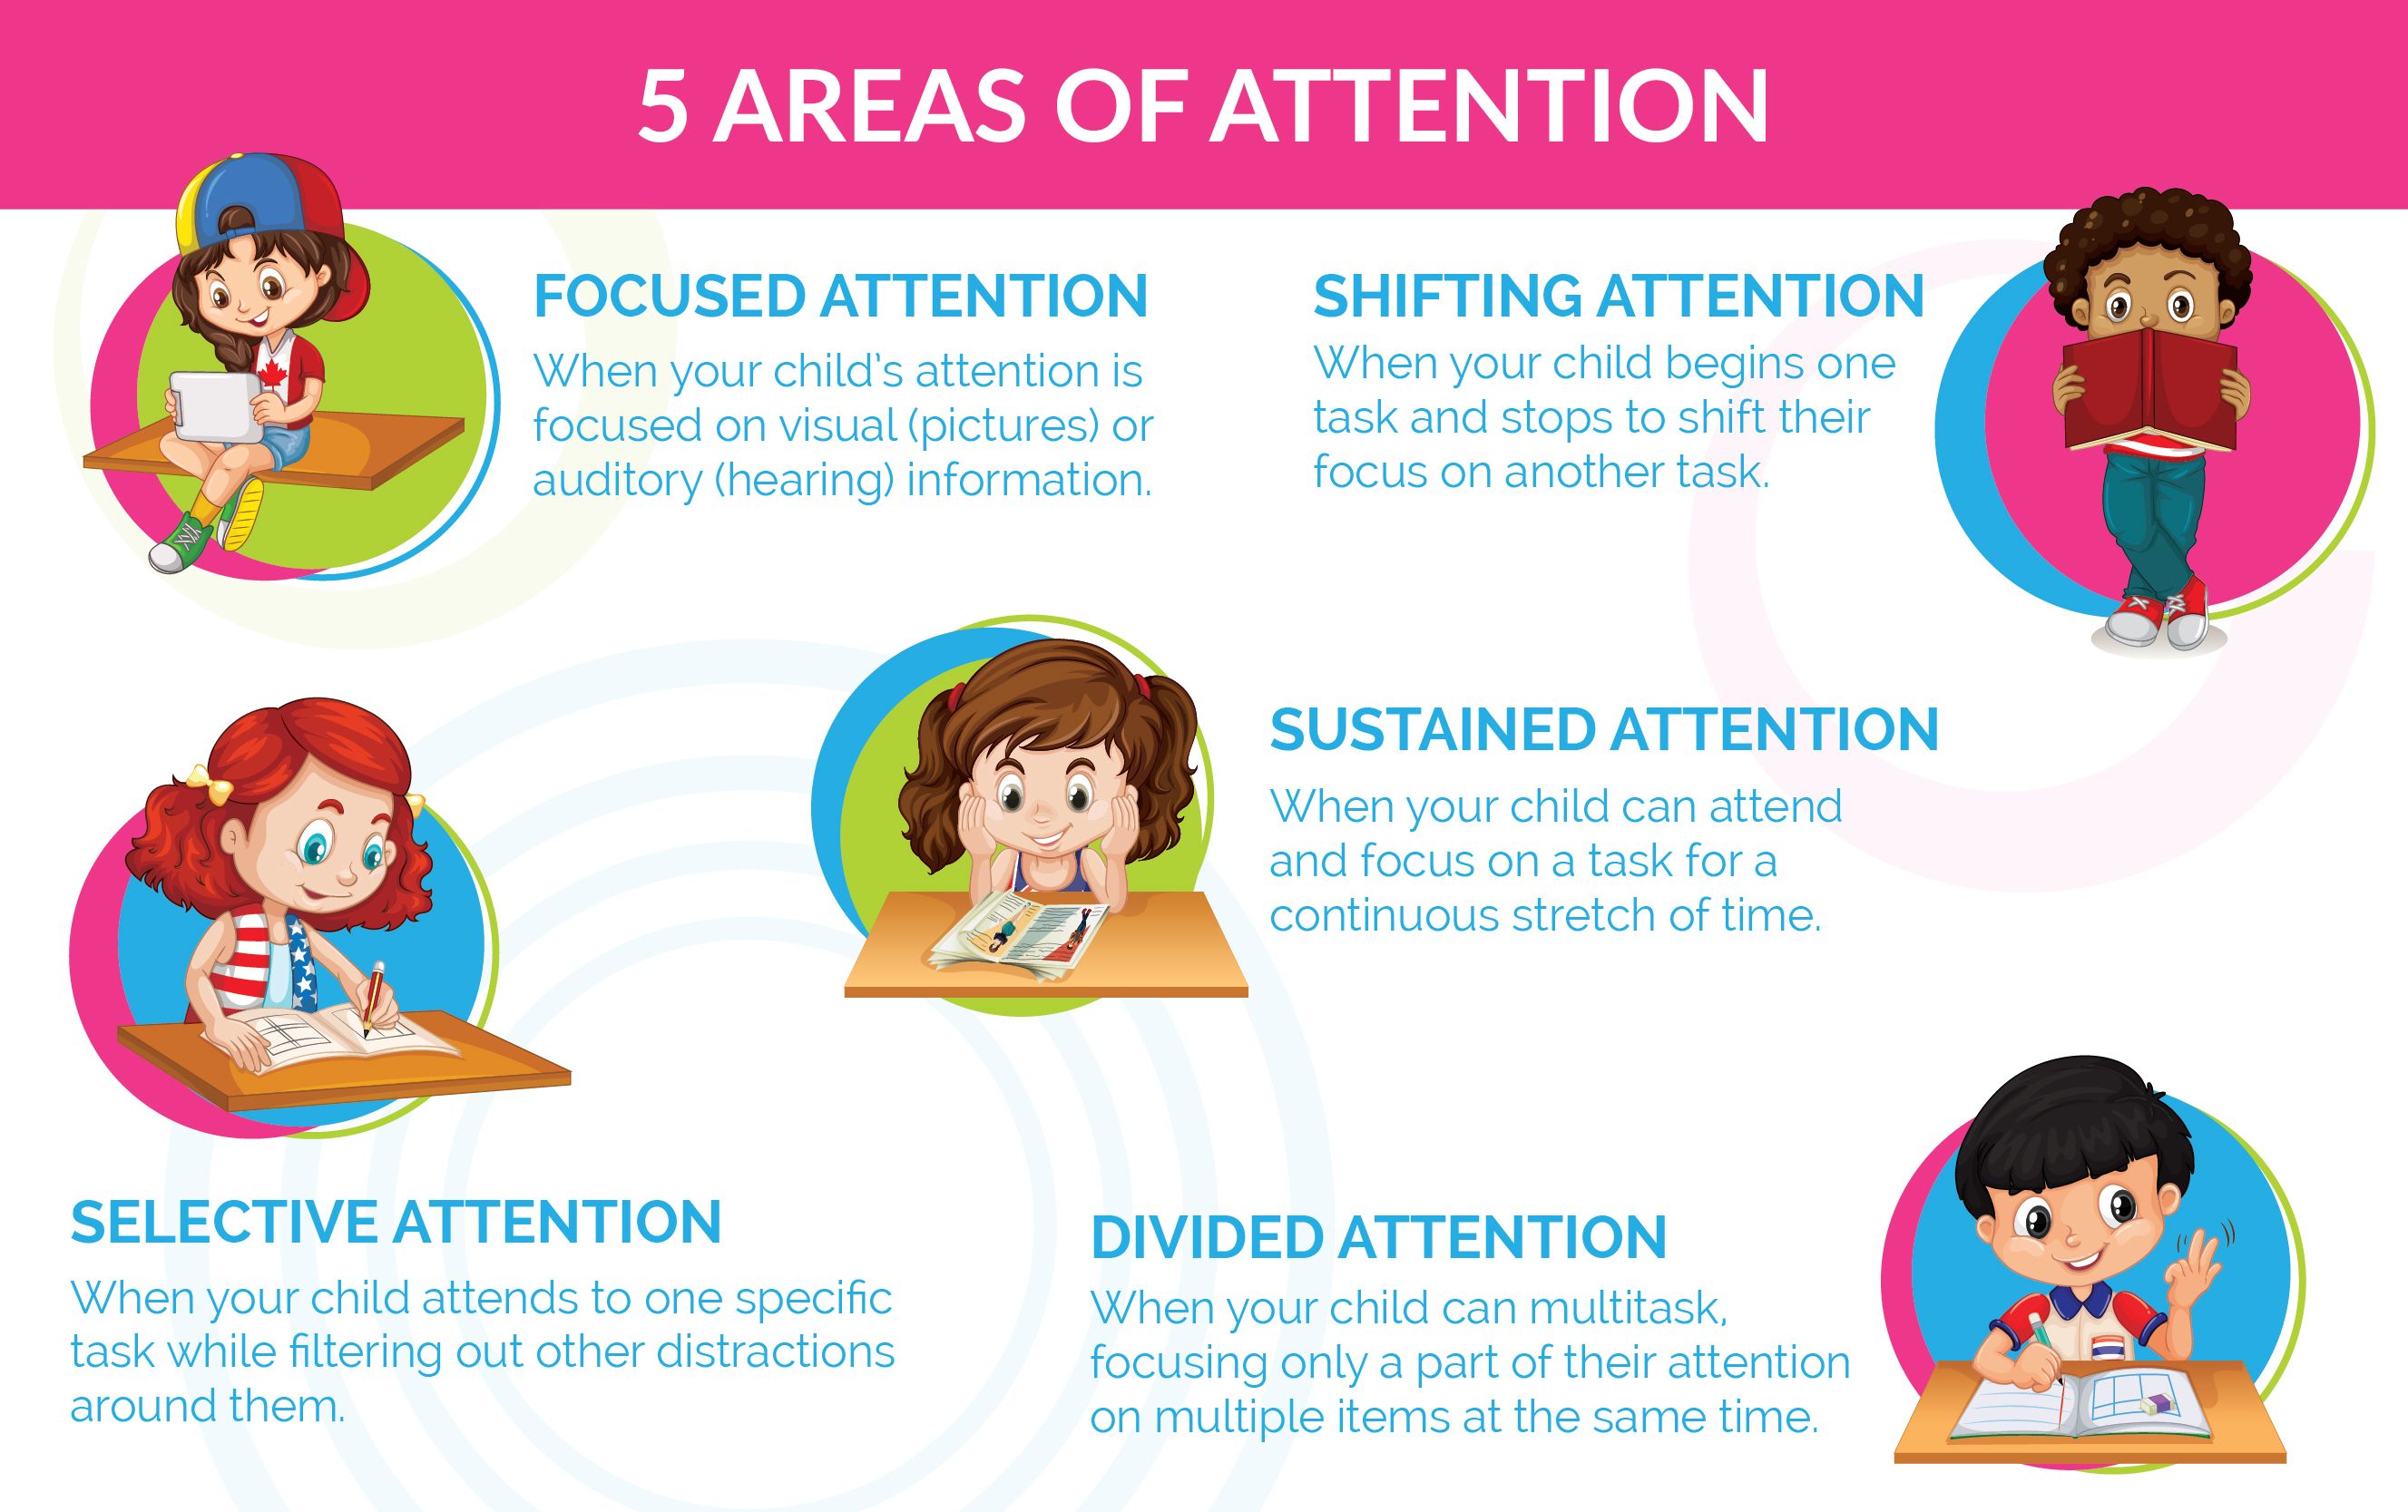 Areas of Attention: Is My Child Developmentally Ready for Sustained Attention, Focus and Multitasking